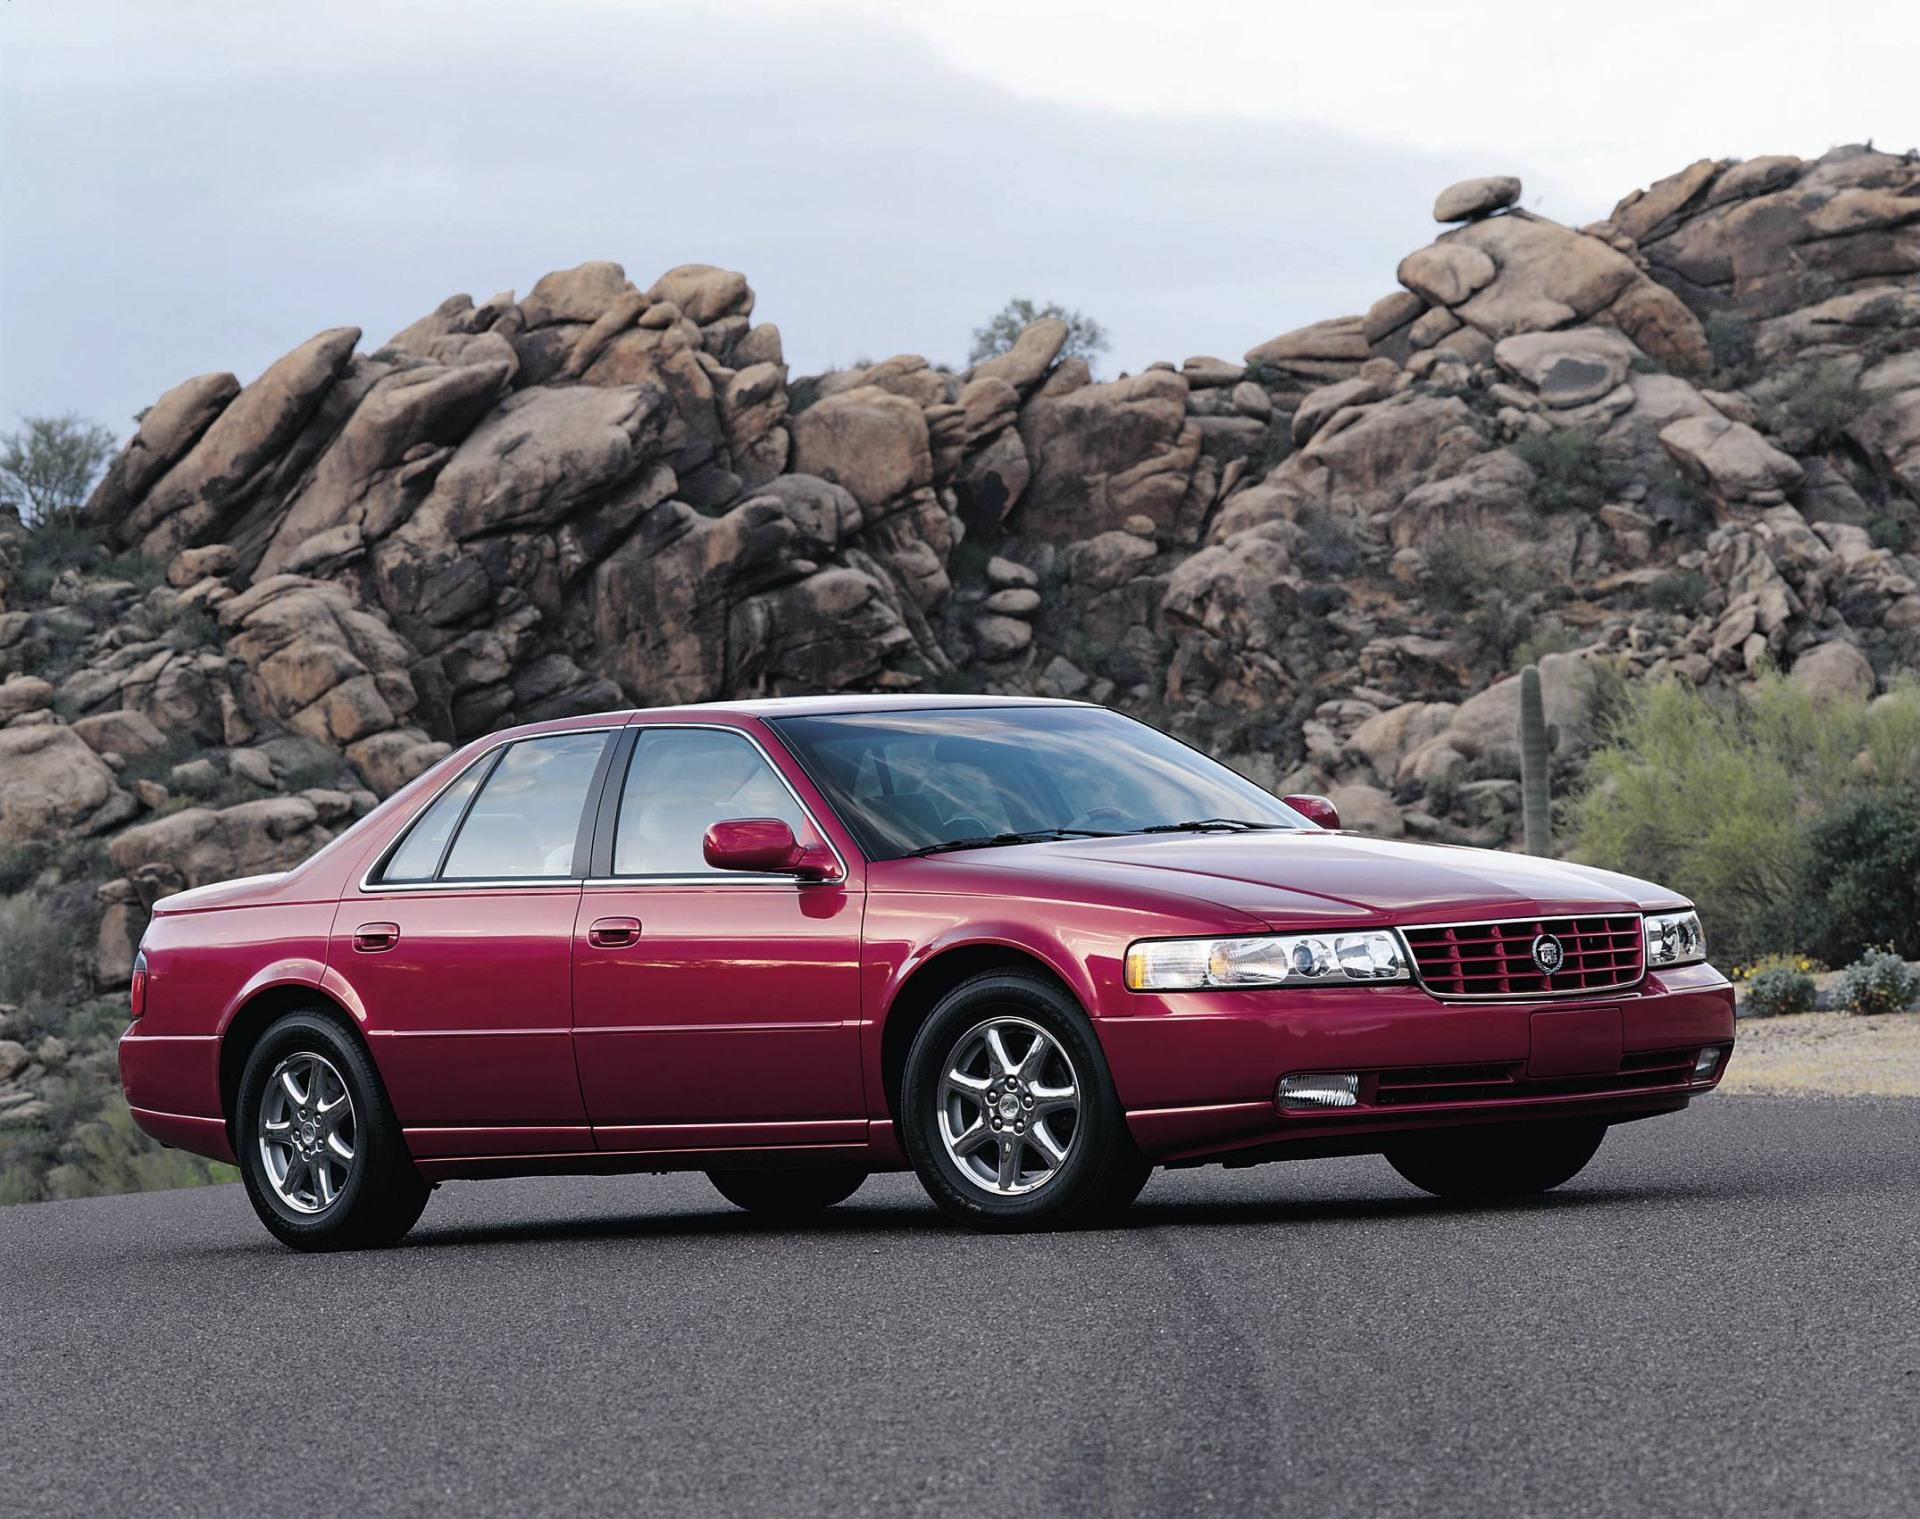 2000 Cadillac Seville History, Pictures, Value, Auction Sales, Research and  News